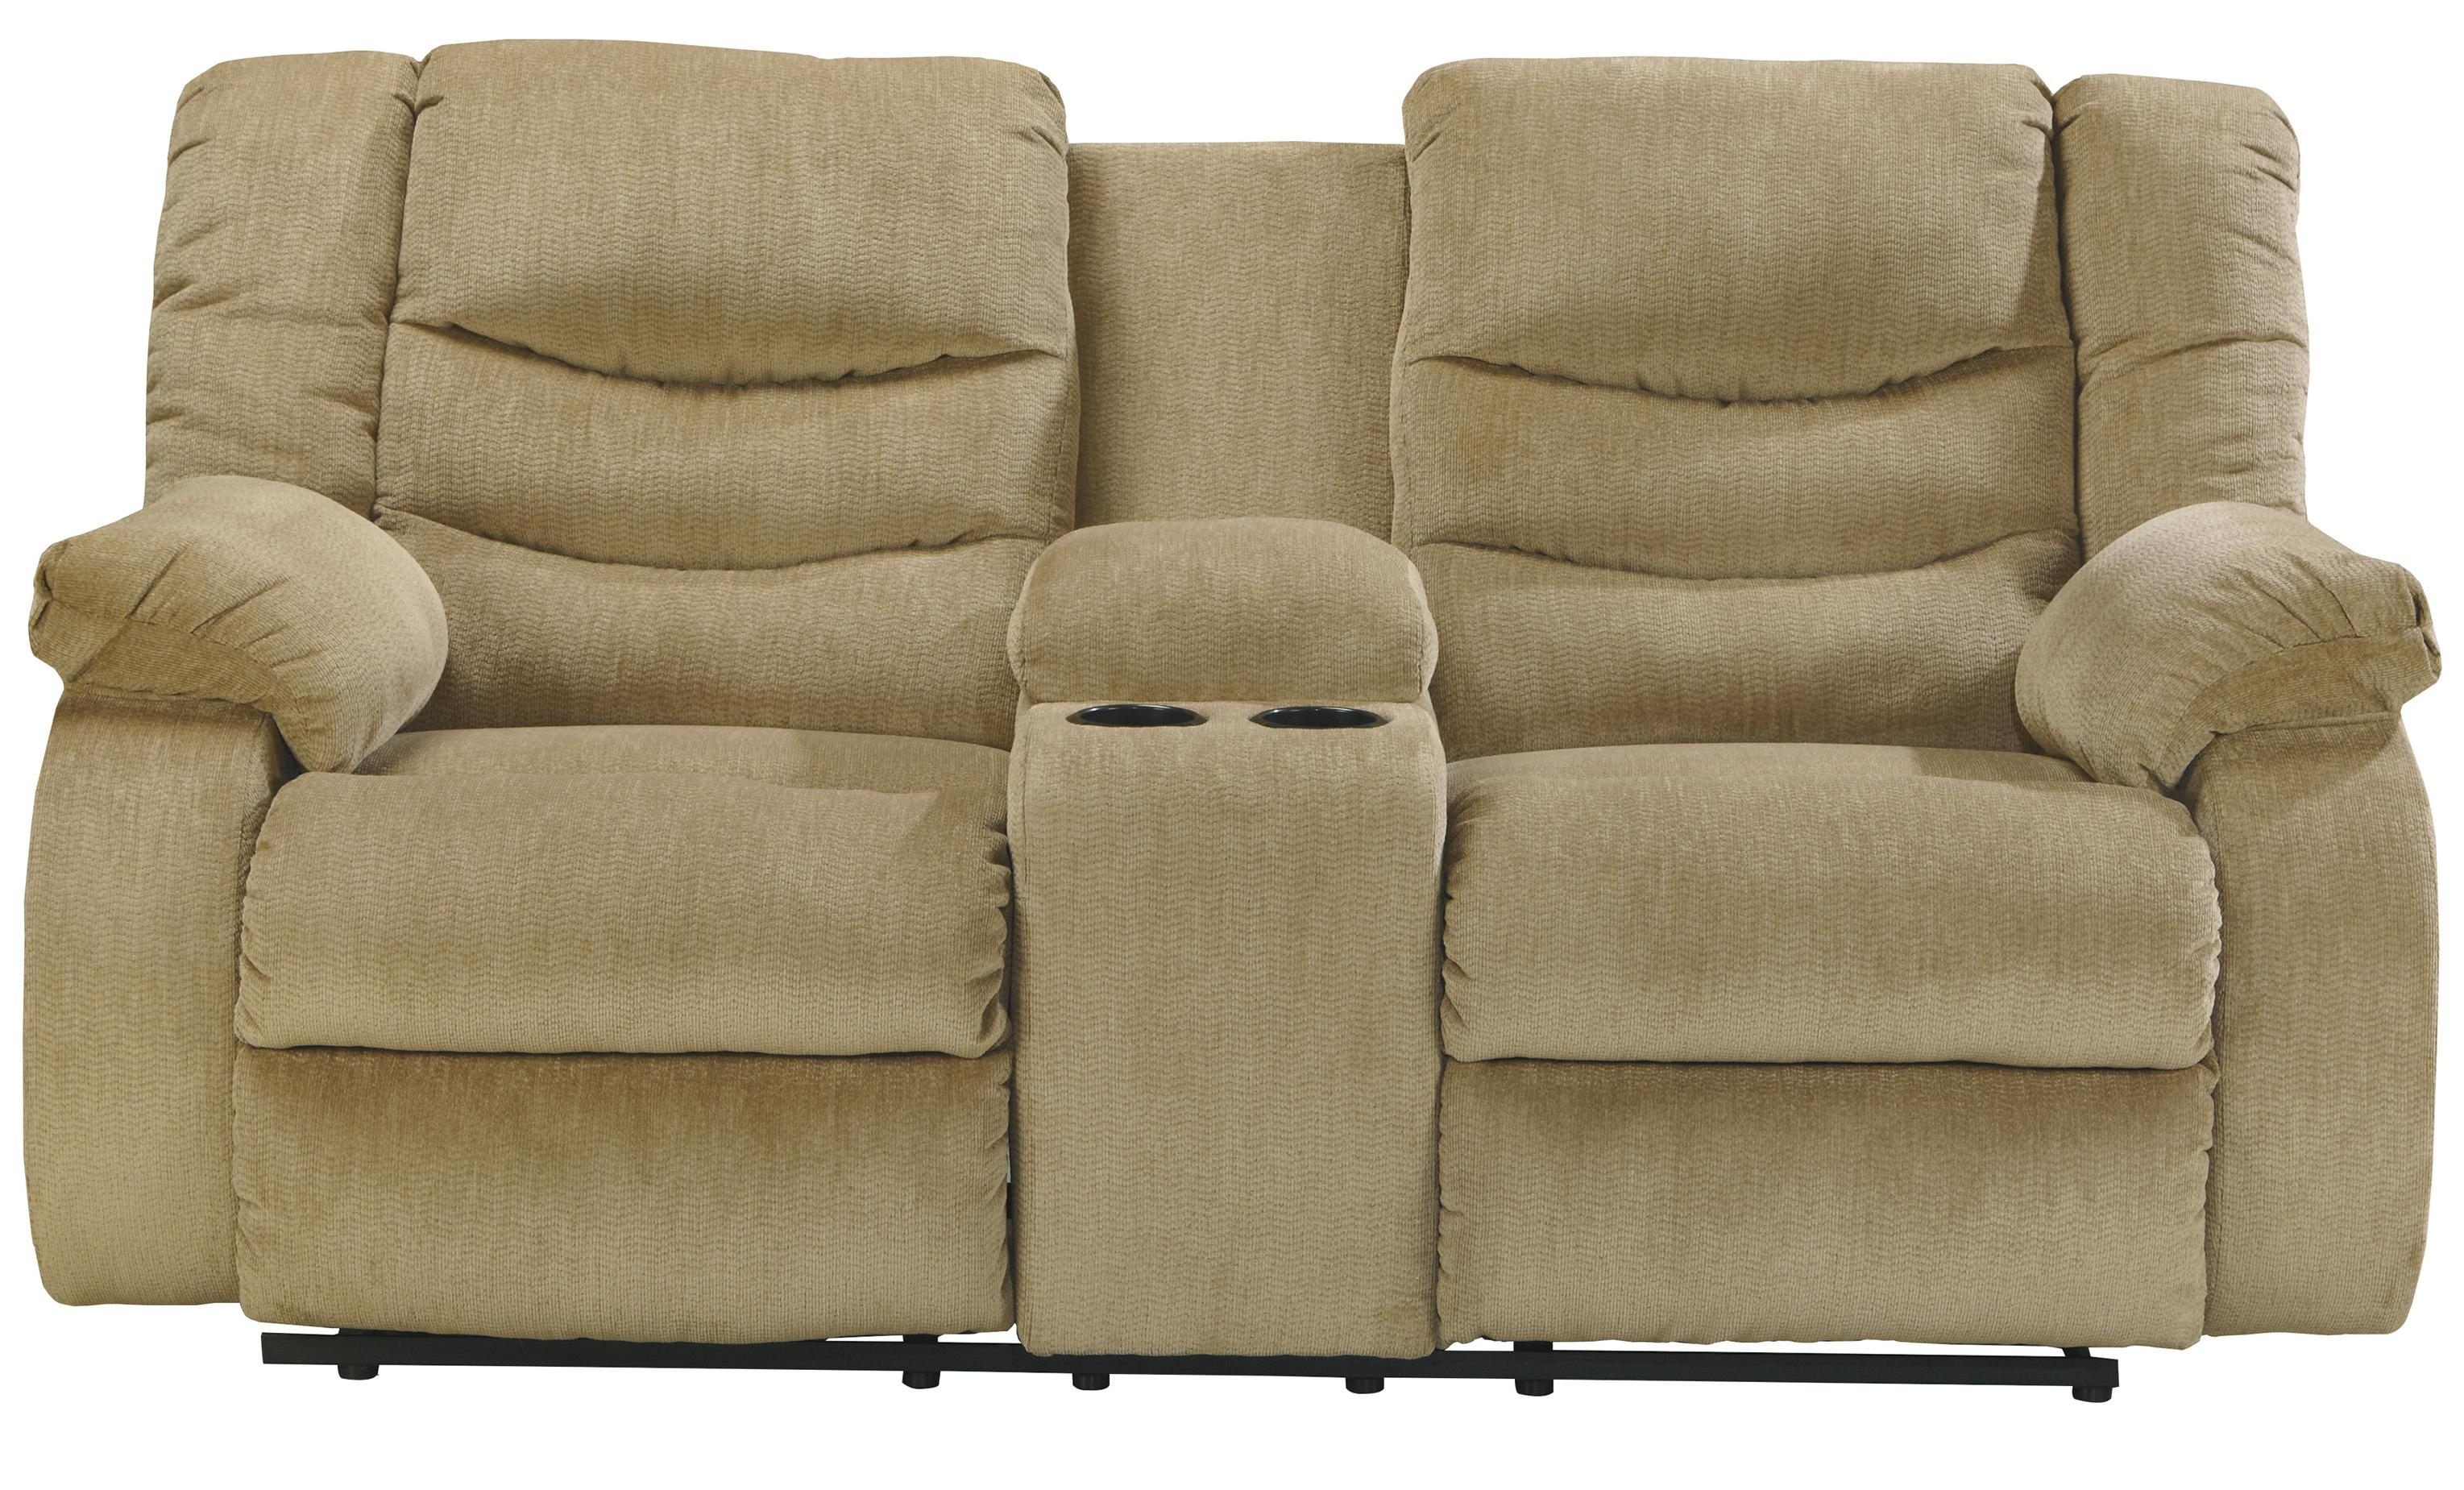 Signature Design by Ashley Garek - Sand Double Reclining Loveseat w/ Console - Item Number: 9200294